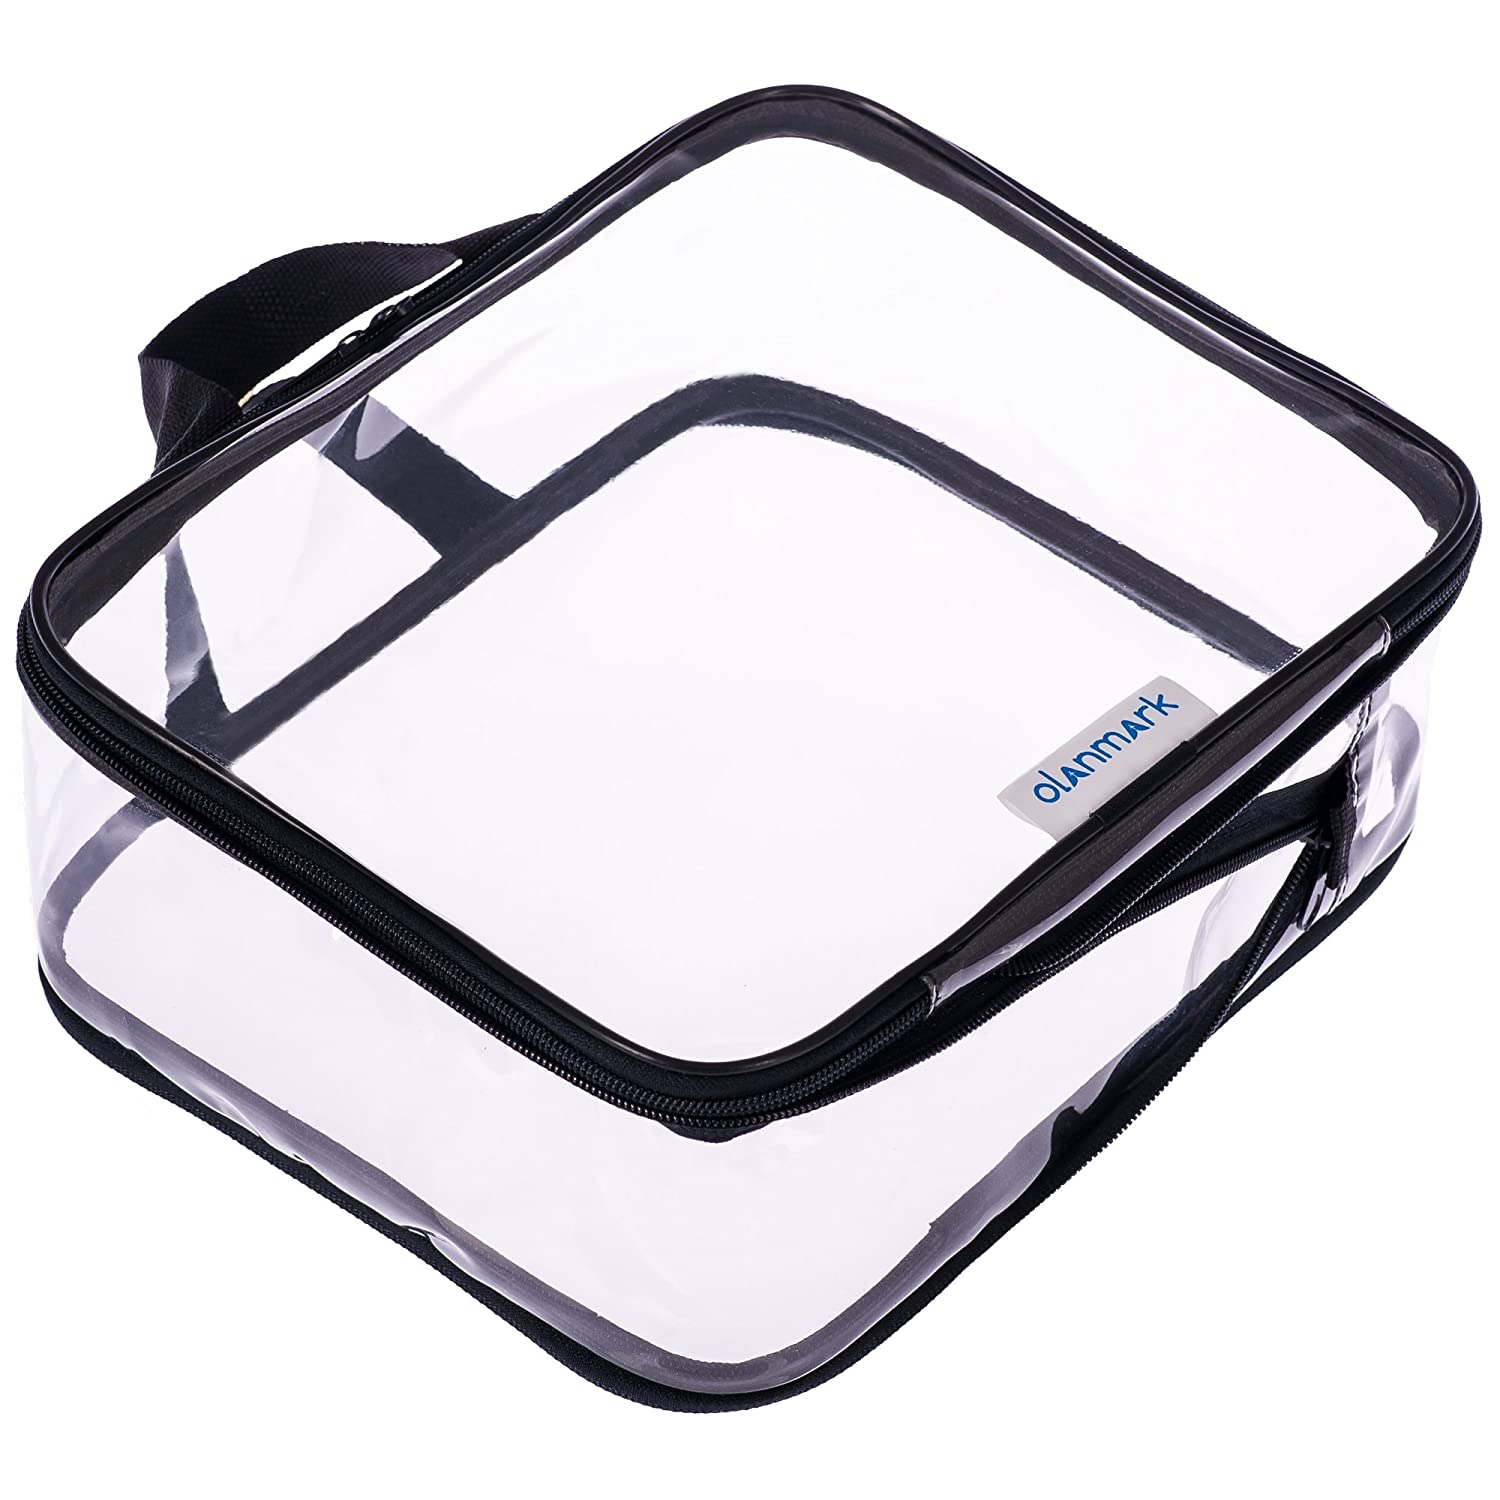 Clear Toiletry Bag - Compression Packing Cube - PVC Cosmetic Bag - Transparent Makeup Bag - See Through Plastic Clear Bag